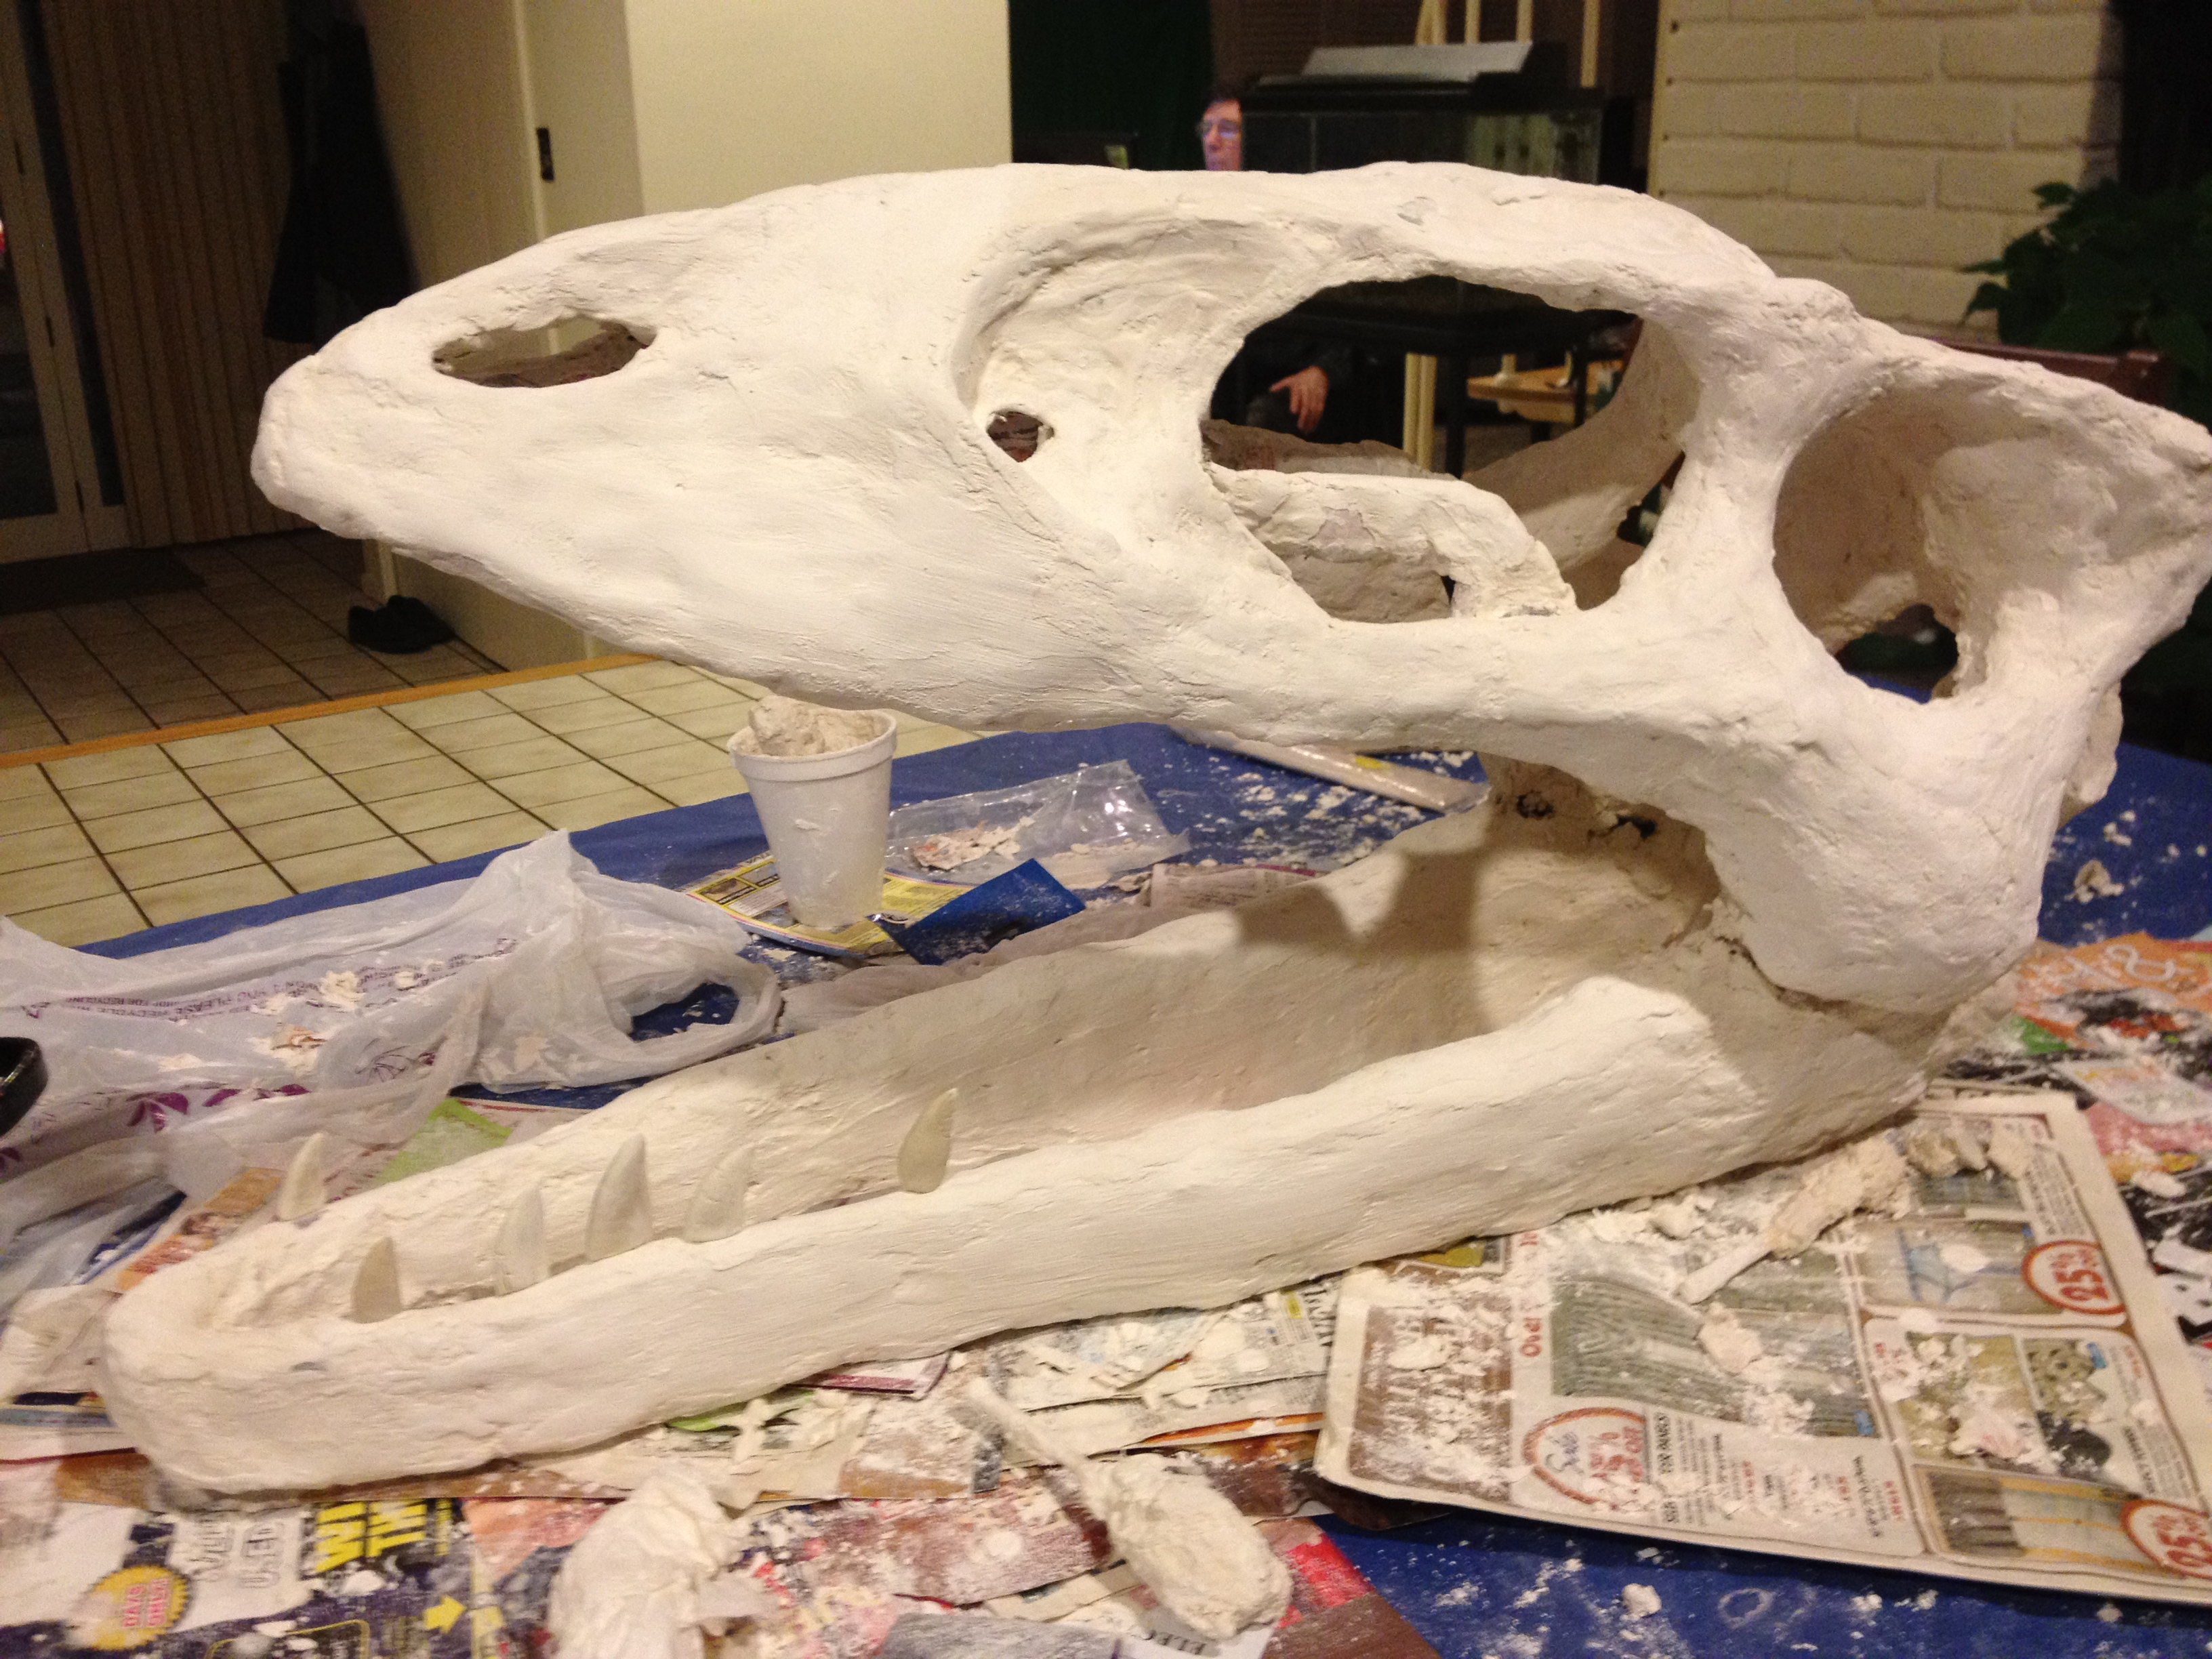 https://tumblehomelearning.com/how-to-make-a-big-dinosaur-skull-for-very-little-money-free-instructions/